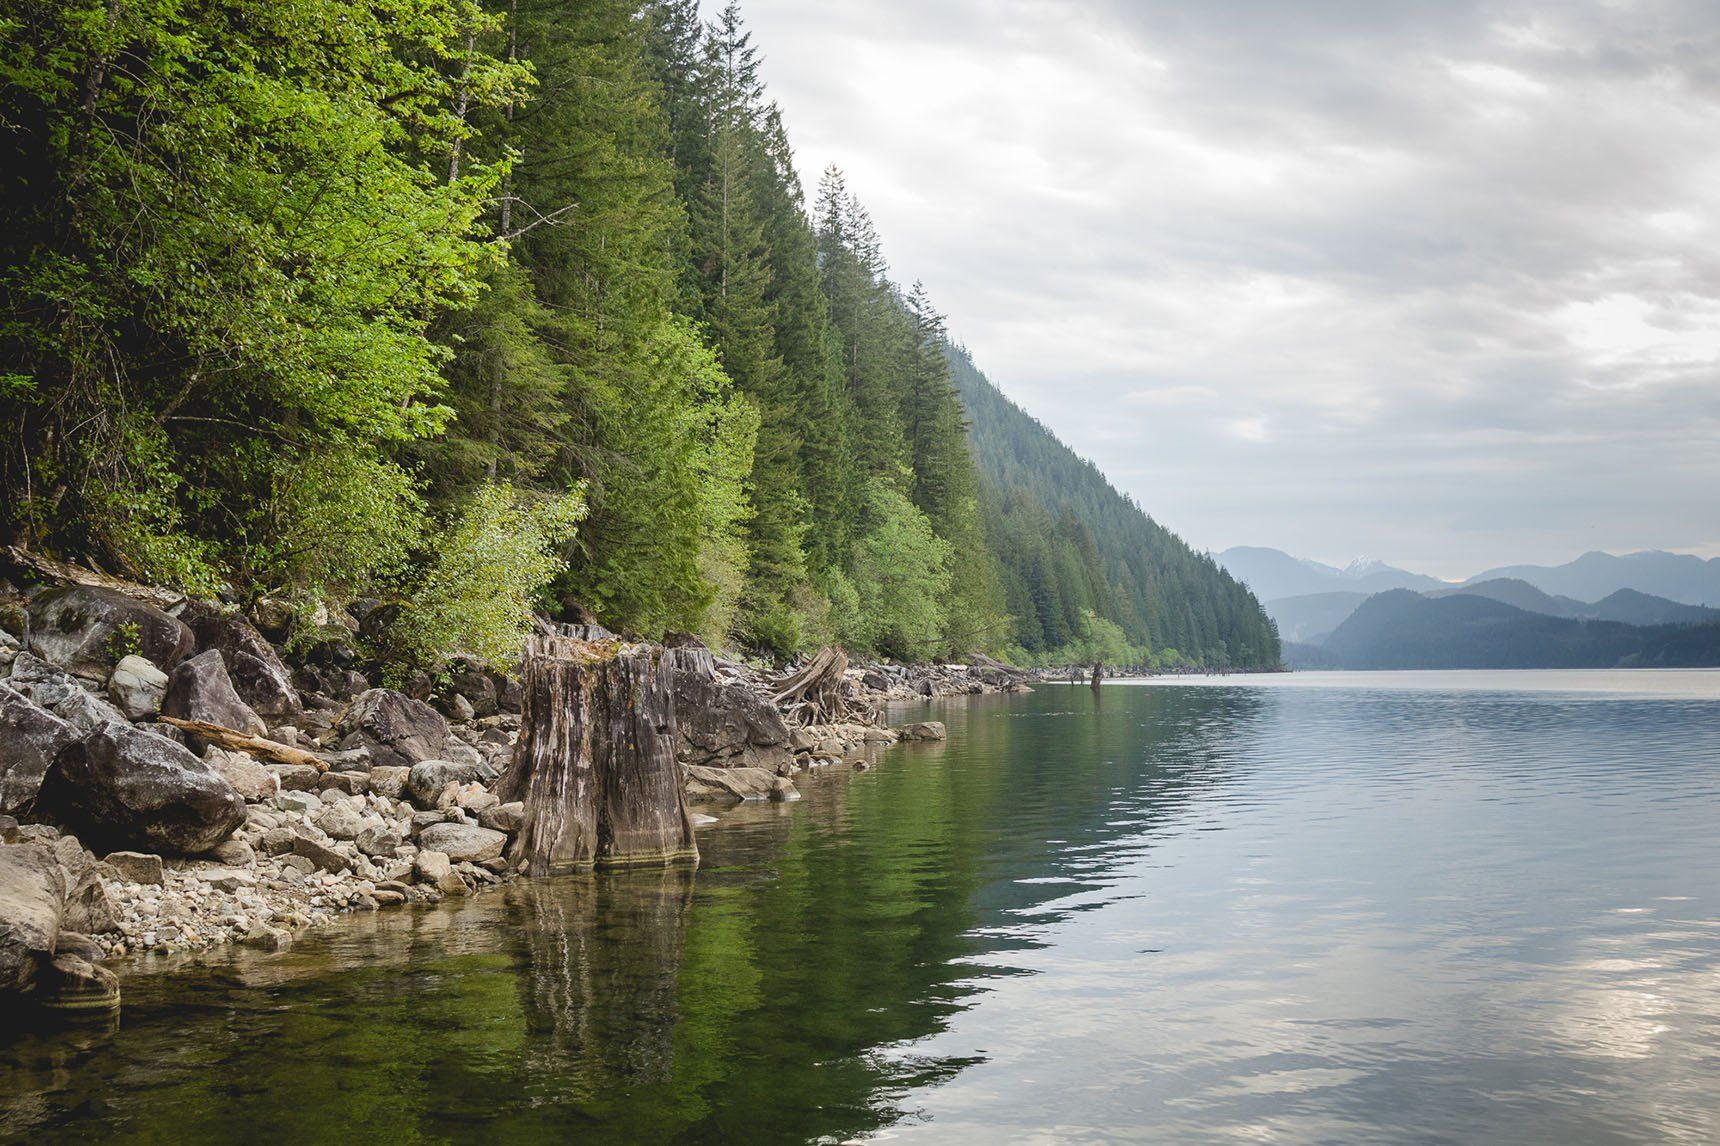 Alouette Lake in the morning.